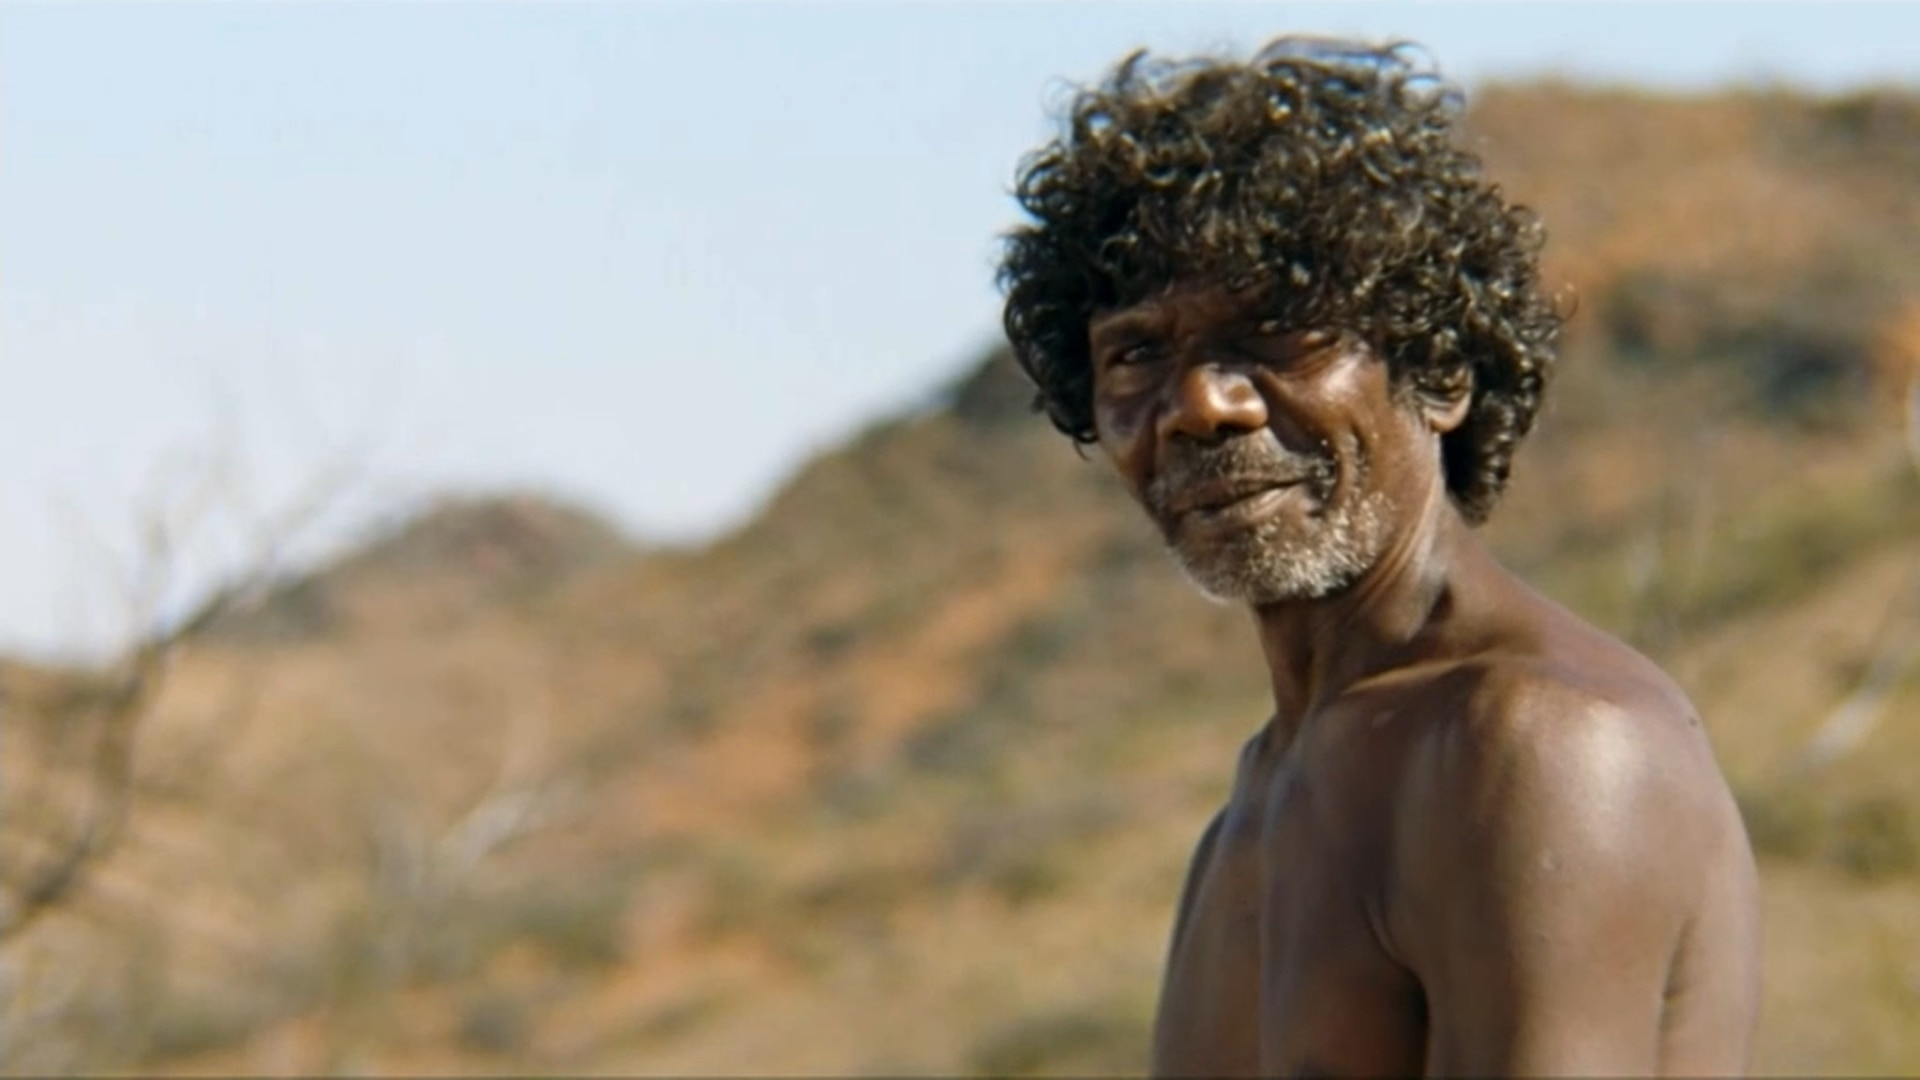 David Gulpilil's presence in the industry also disrupted the practice of non-Aboriginal actors playing Aboriginal character roles.